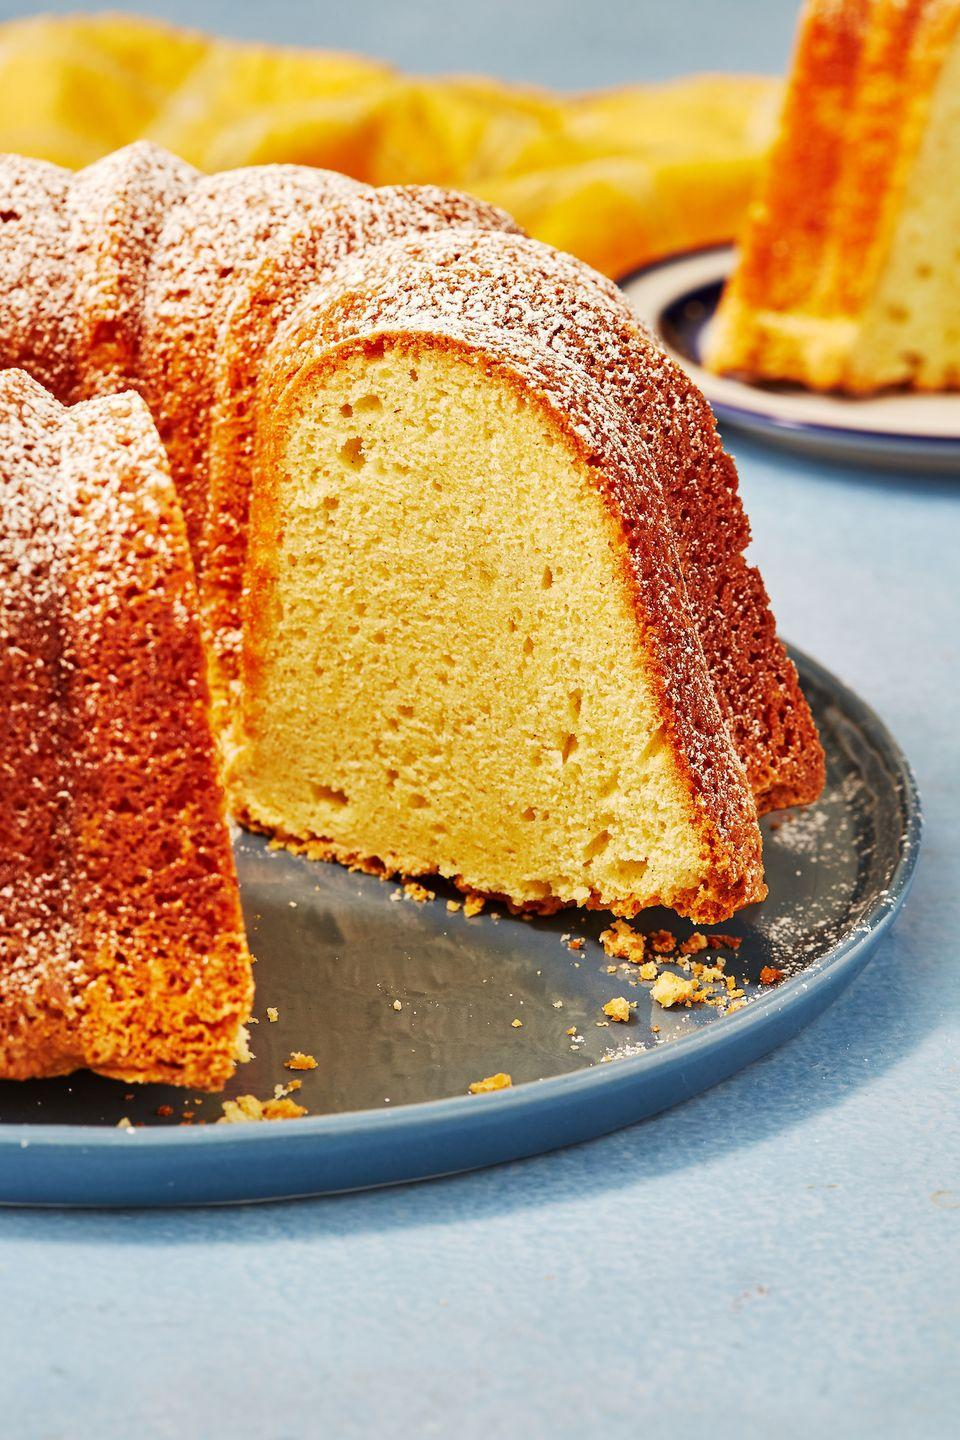 """<p>Simple and moist.</p><p>Get the recipe from <a href=""""https://www.delish.com/cooking/recipe-ideas/a29791107/sour-cream-pound-cake-recipe/"""" rel=""""nofollow noopener"""" target=""""_blank"""" data-ylk=""""slk:Delish"""" class=""""link rapid-noclick-resp"""">Delish</a>.</p>"""